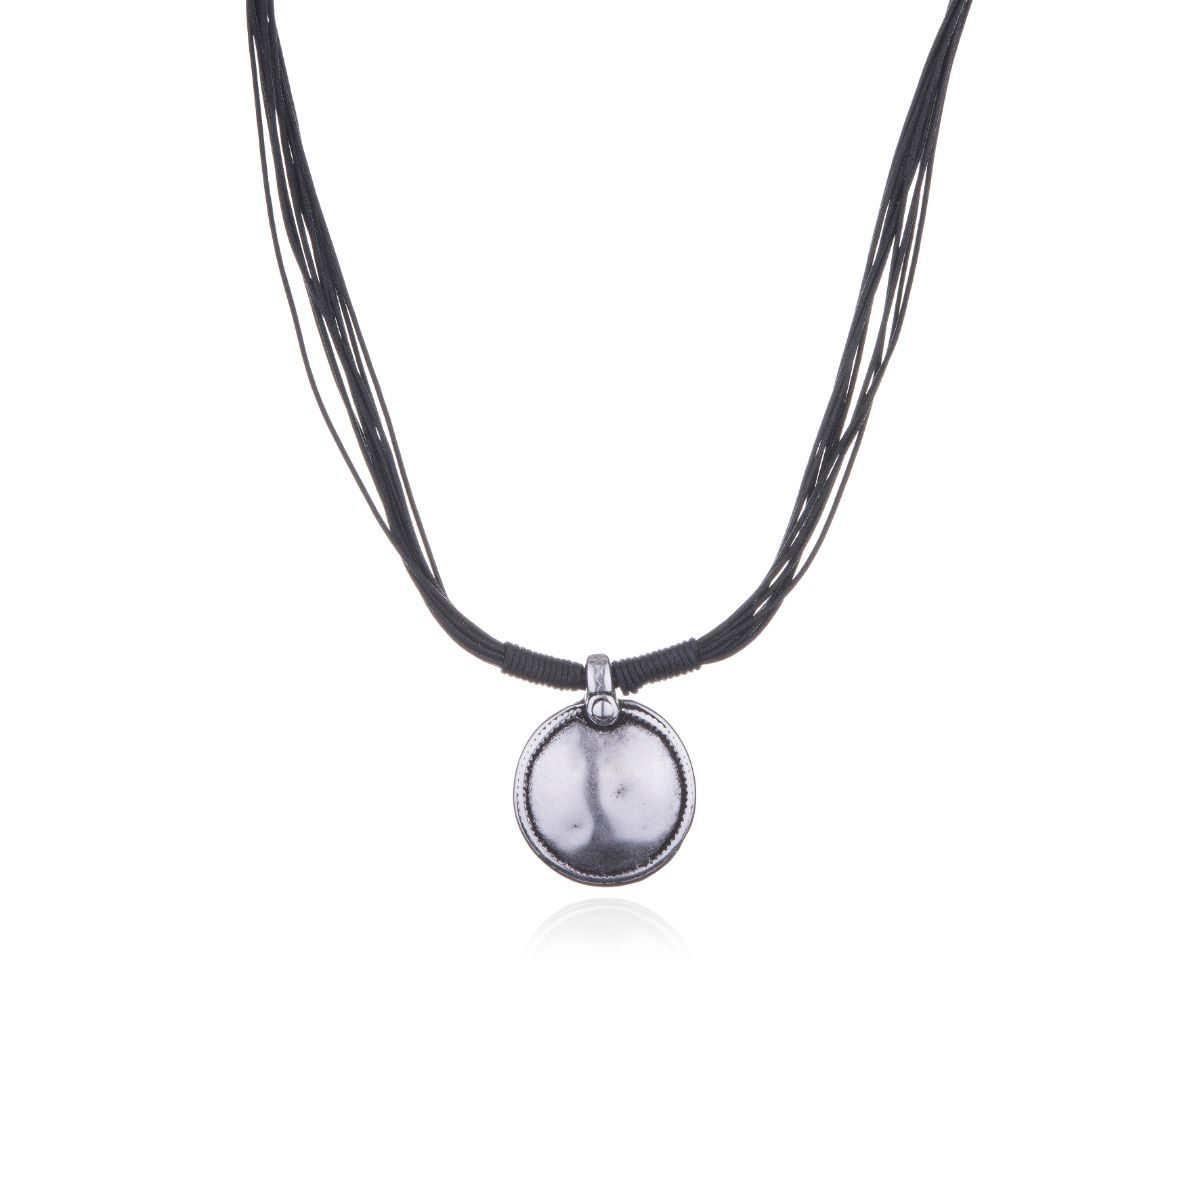 Selene short waxed cotton necklace with silver plated circular piece in the center